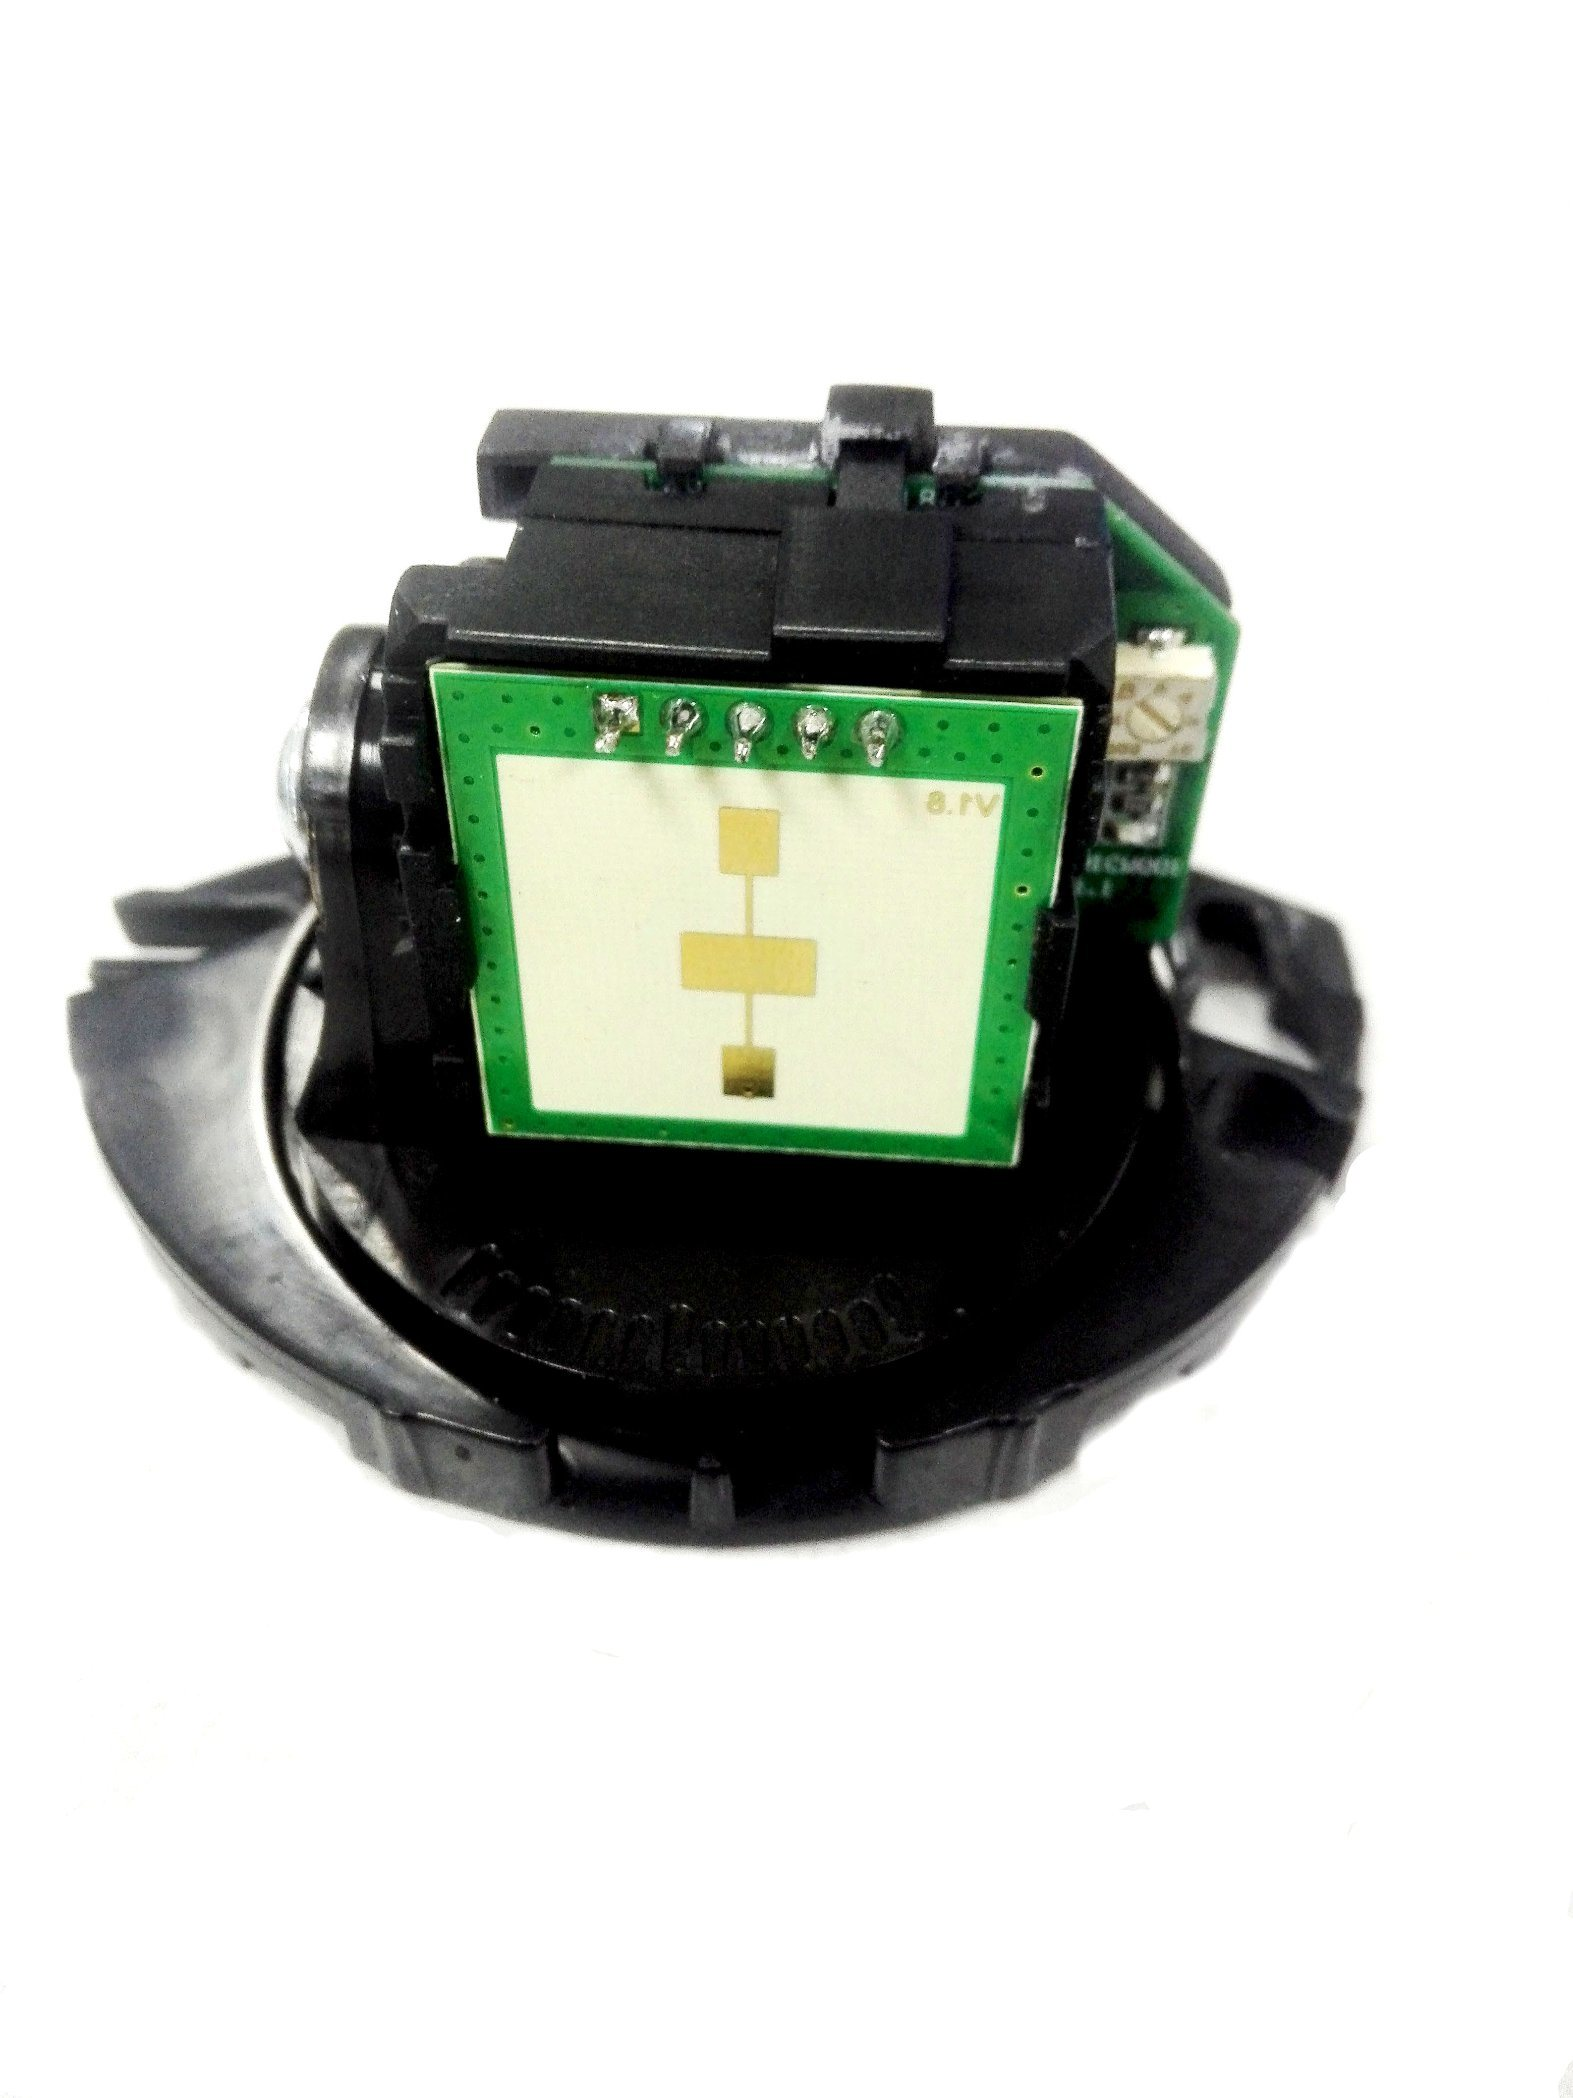 China Automatic Sensor Manufacturers Suppliers Threewire System Wall Mount Ir Motion Light Switch